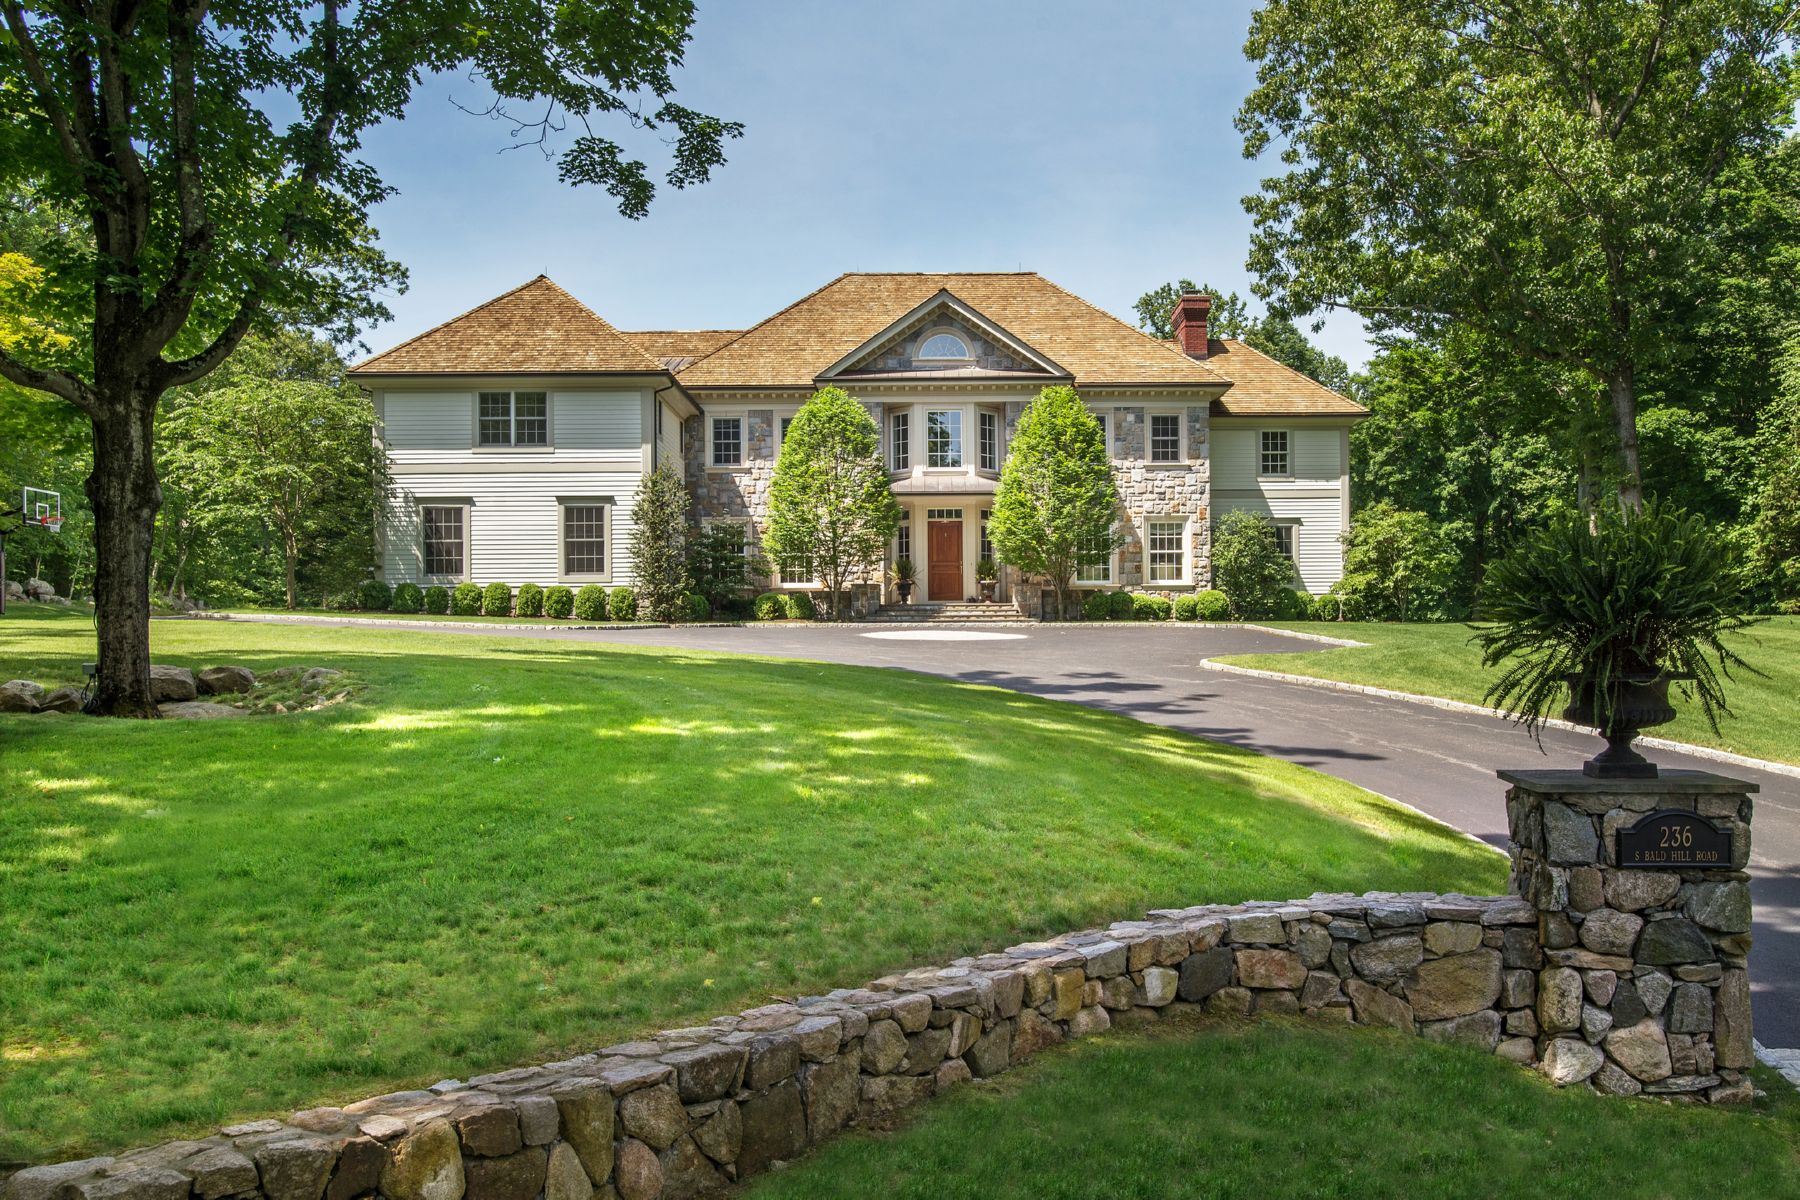 rentals property at Classic Stone & Shingle Colonial